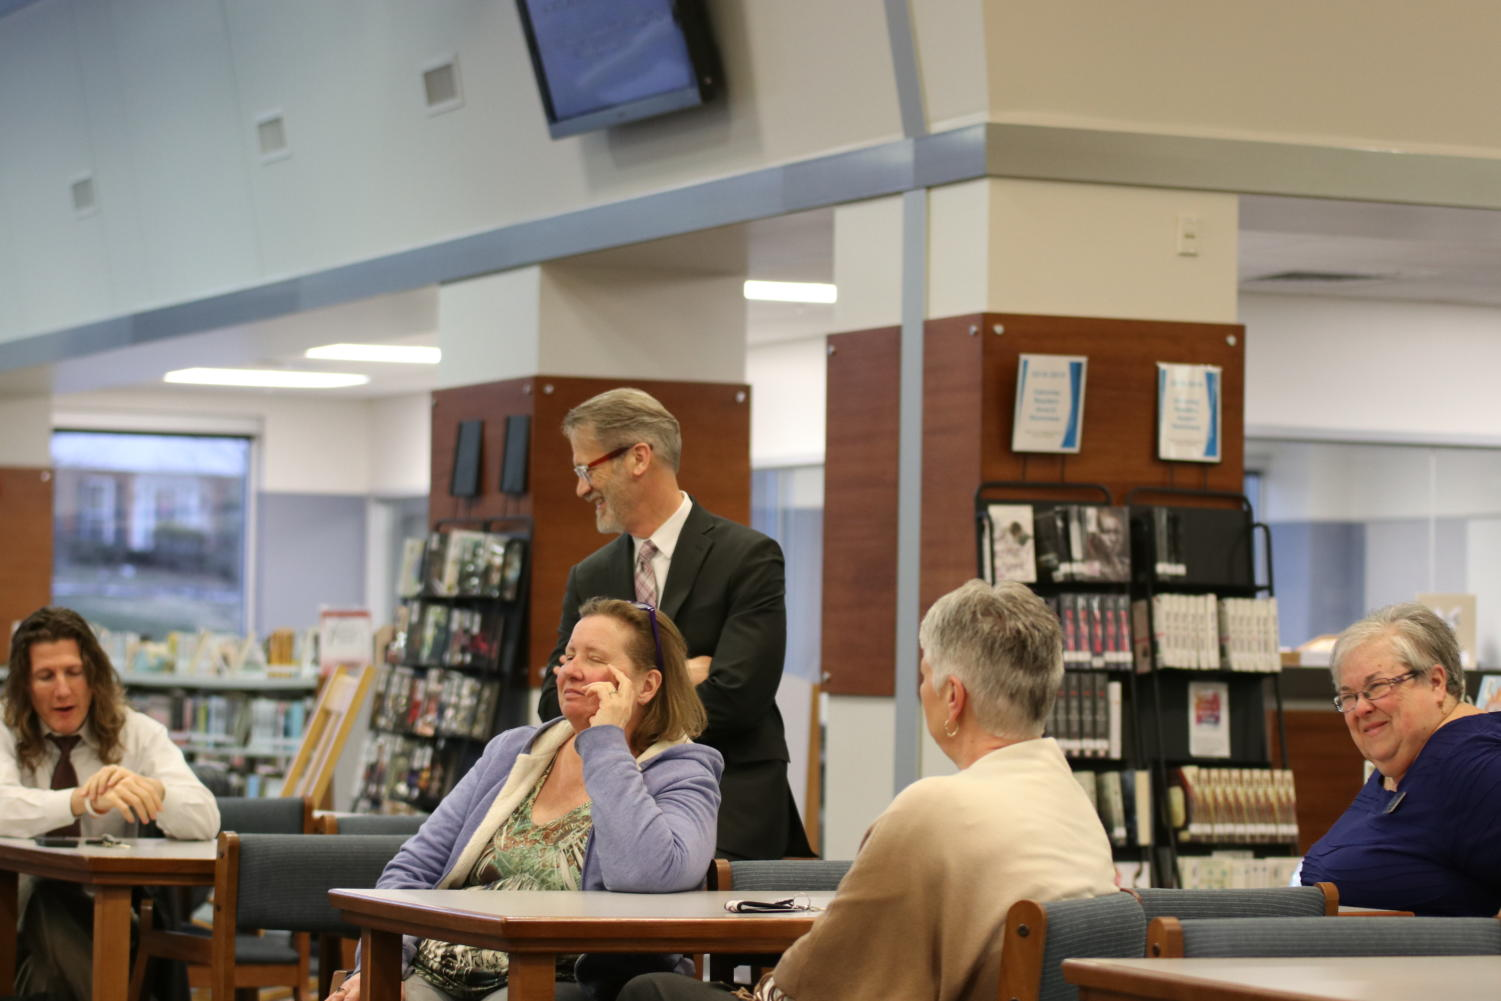 Superintendent Dr. Eric Knost holds a forum on March 13 for MHS faculty to express their expectations for the next year's principal after Principal Dr. Greg Mathison announced that he will be taking a job at Parkway as the Assistant Superintendent of Student Services. A similar forum was held later that day for parents to express their voice.